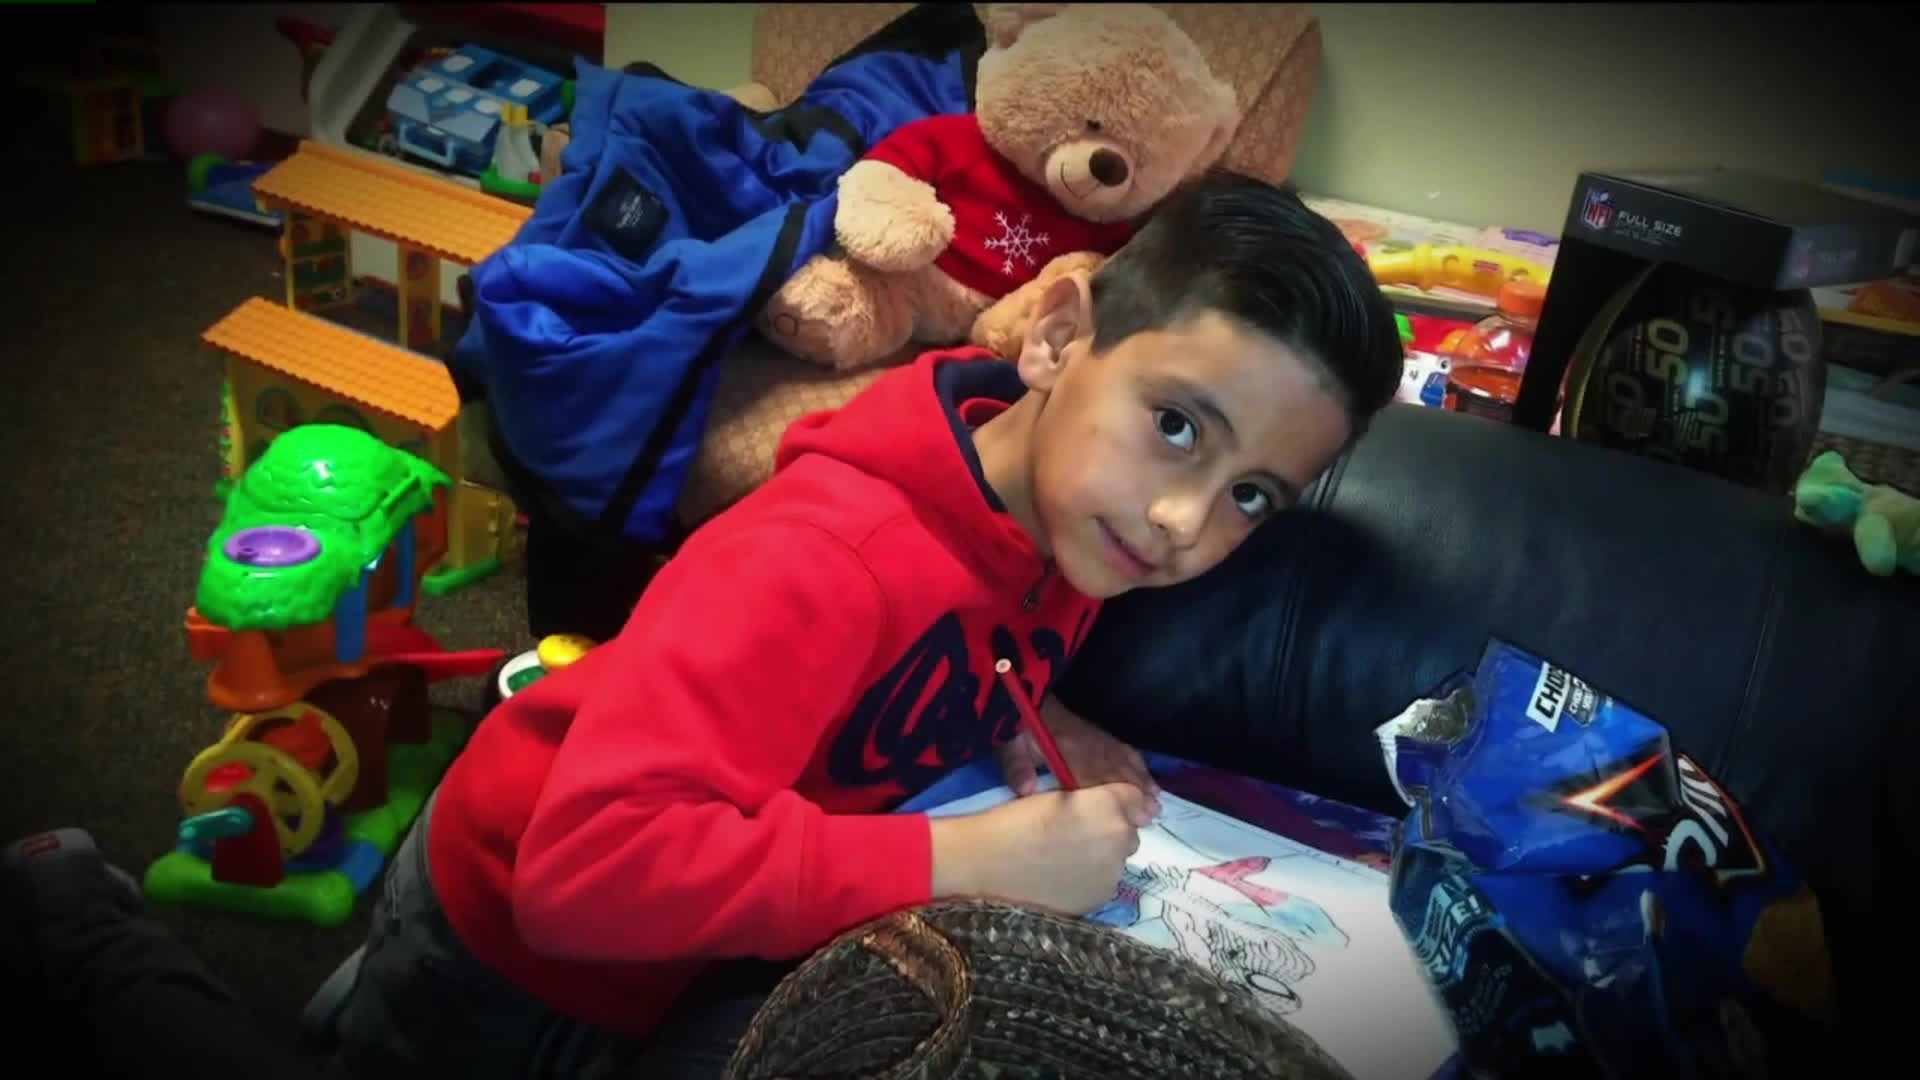 Father Finds Son 8 Years After Being Separated From Him, Launches Custody Battle